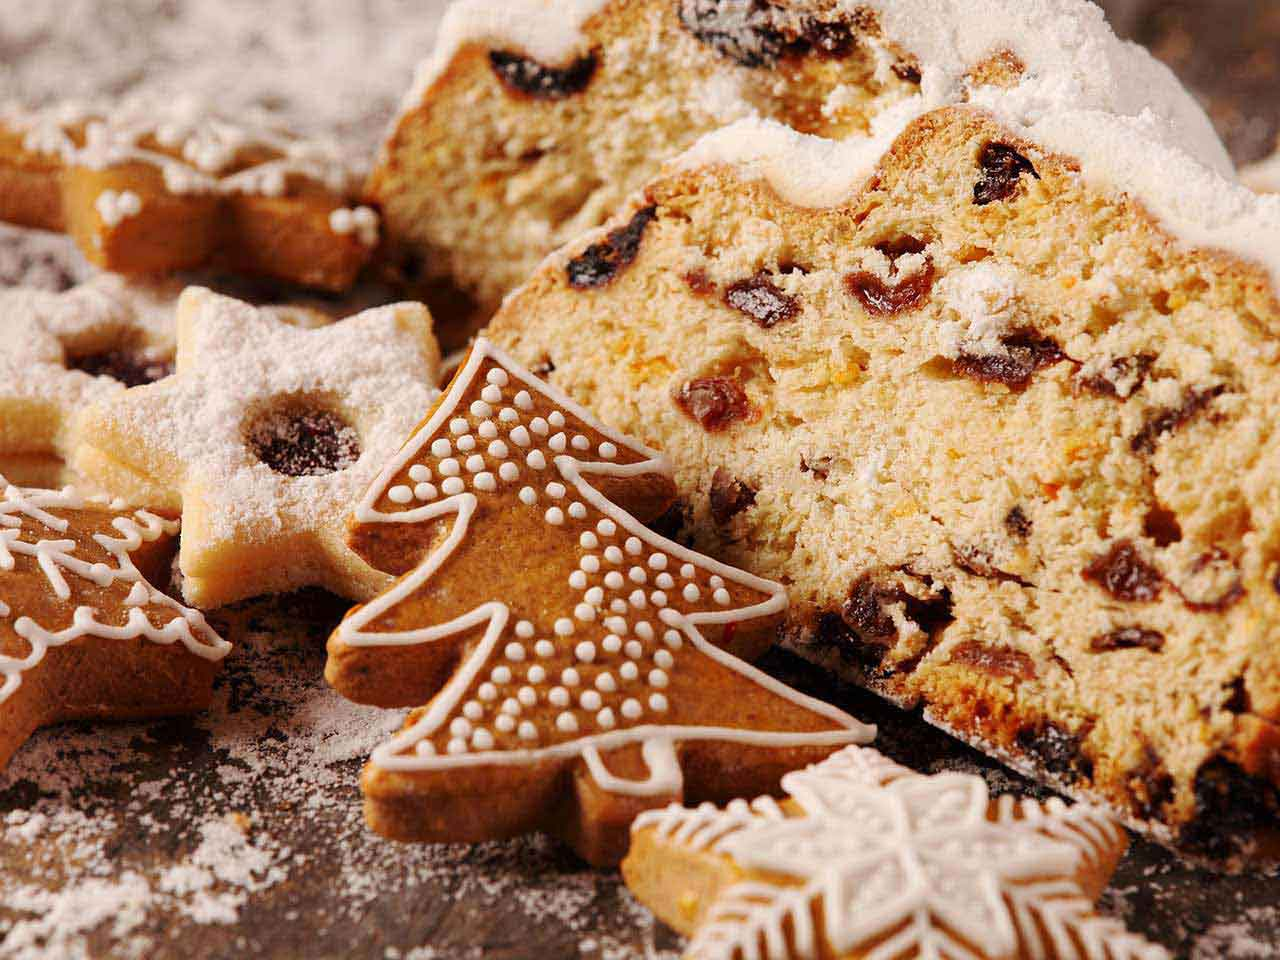 Selection of Christmas baked goods